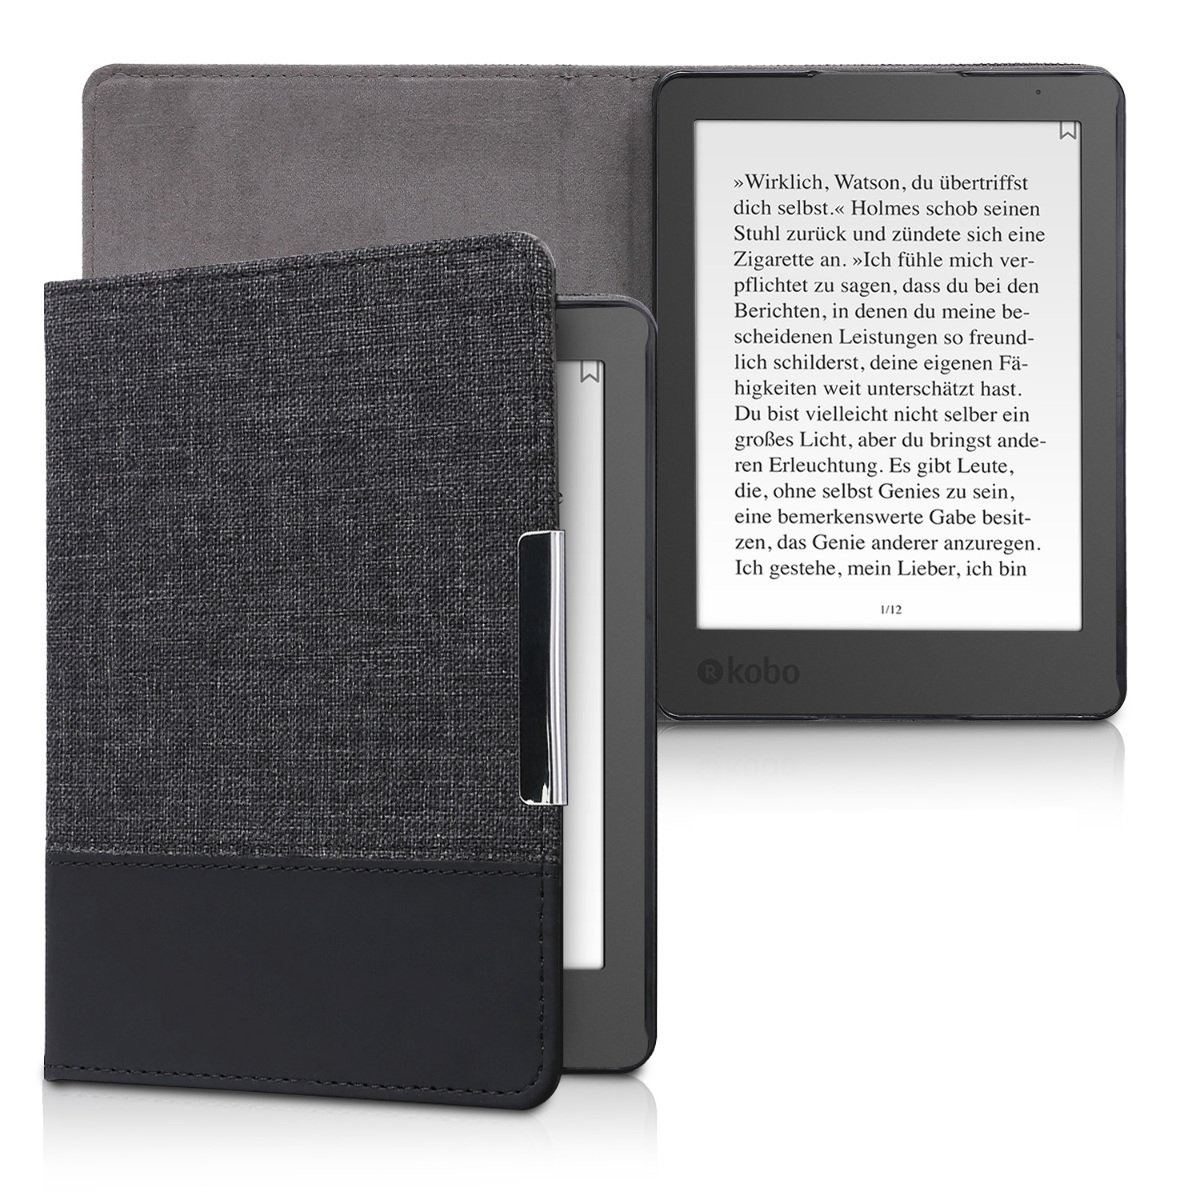 kwmobile Case for Kobo Aura Edition 2 - PU Leather and Canvas Protective e-Reader Cover Folio Case - anthracite black